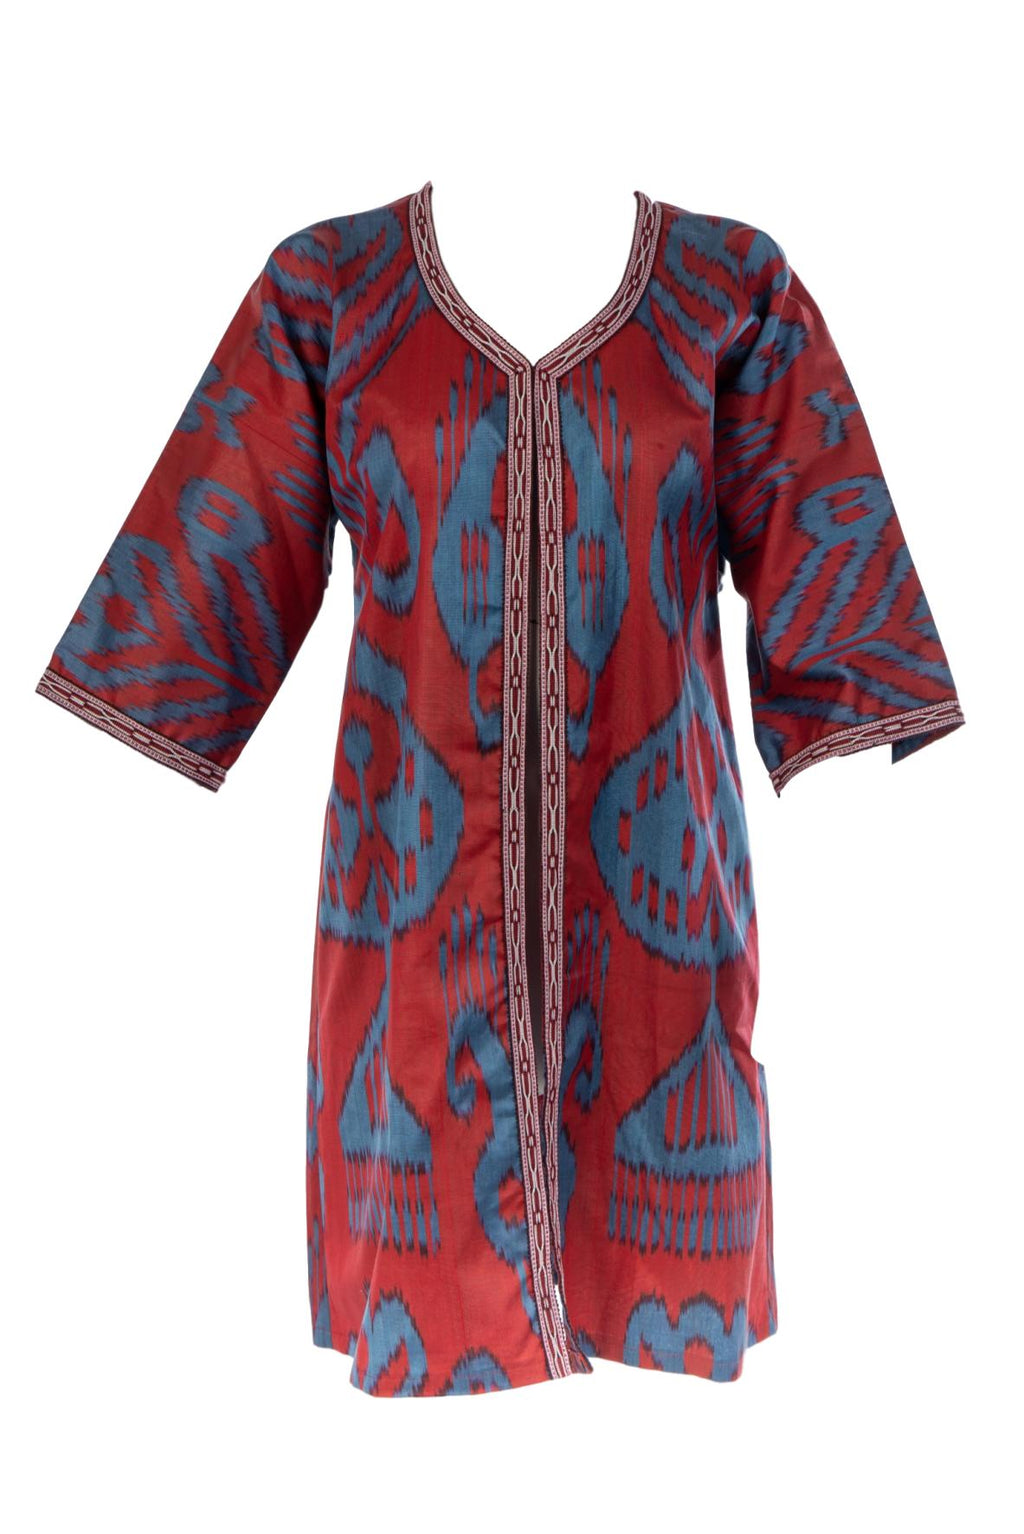 Rowan Silk Ikat Jacket in Red and Blue